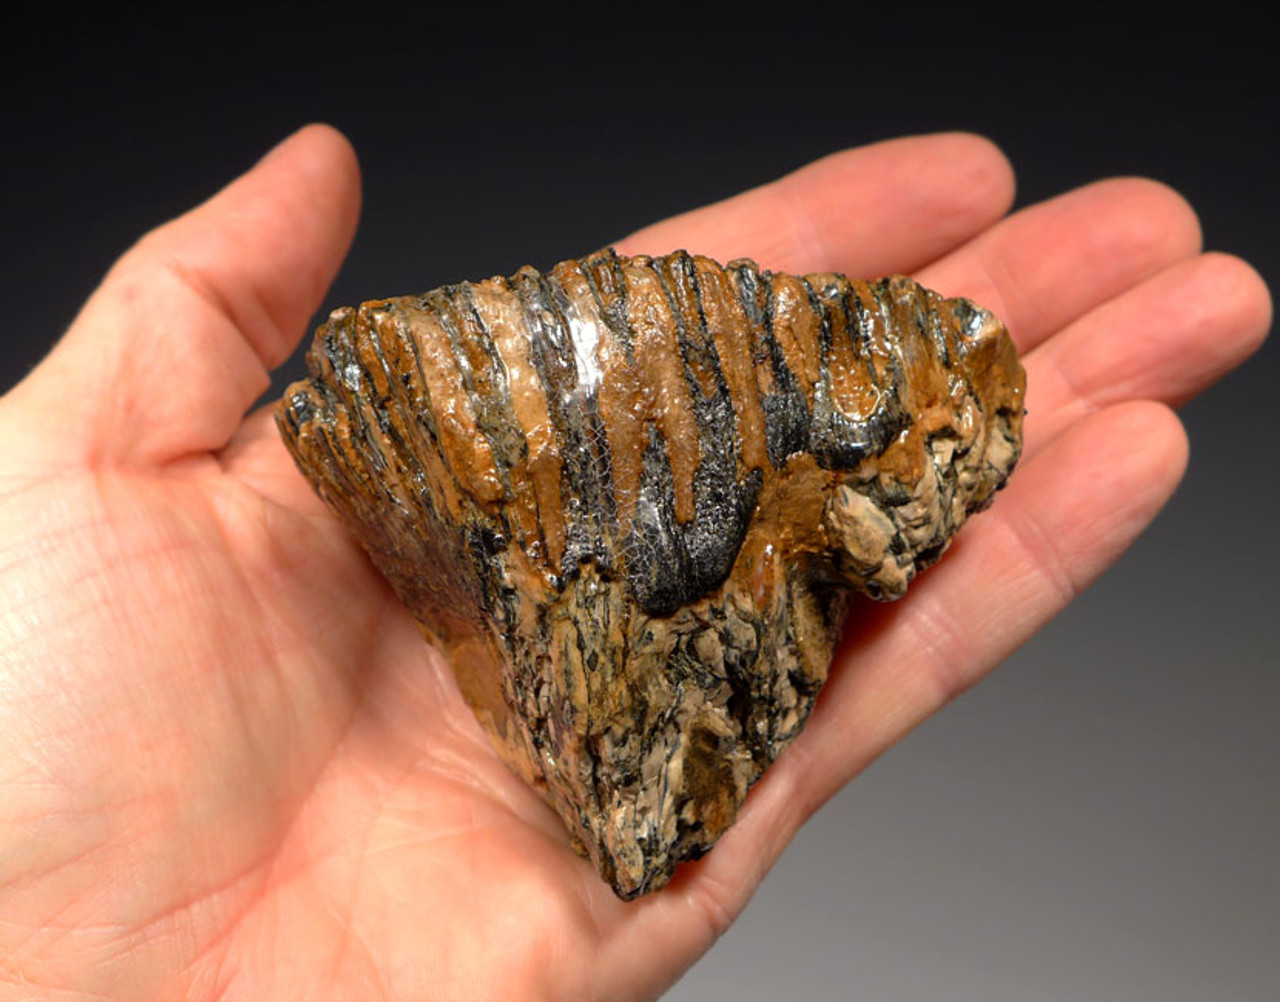 LMX131 - BABY WOOLLY MAMMOTH UPPER TOOTH FROM EUROPE